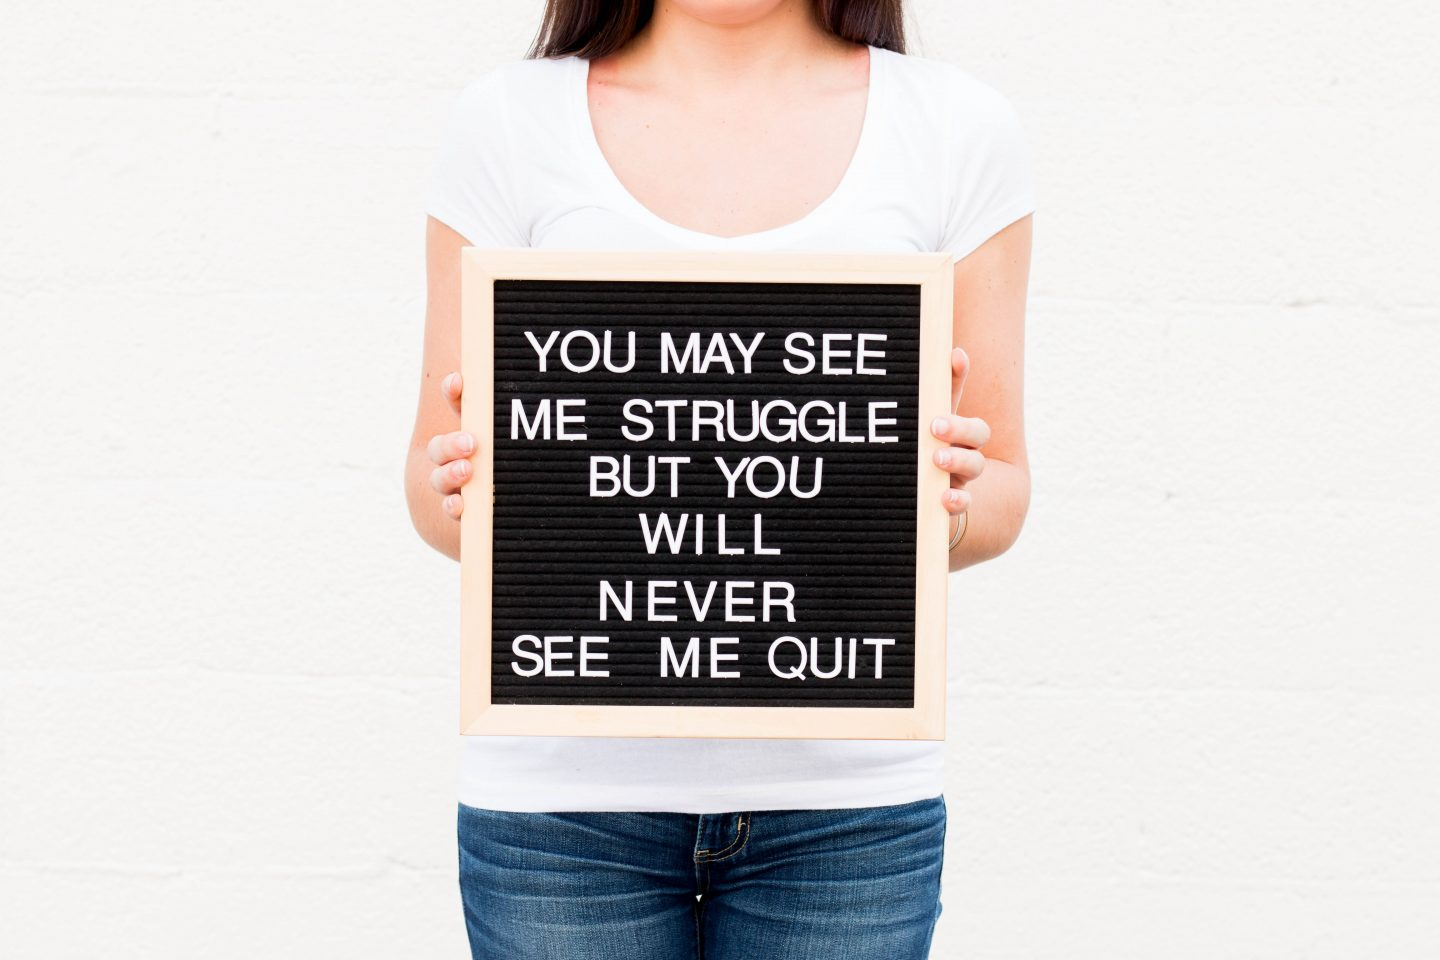 You may see me struggle but you will never see me quit. Quote. Woman holding quote plaque. Don't quit. Don't give up.